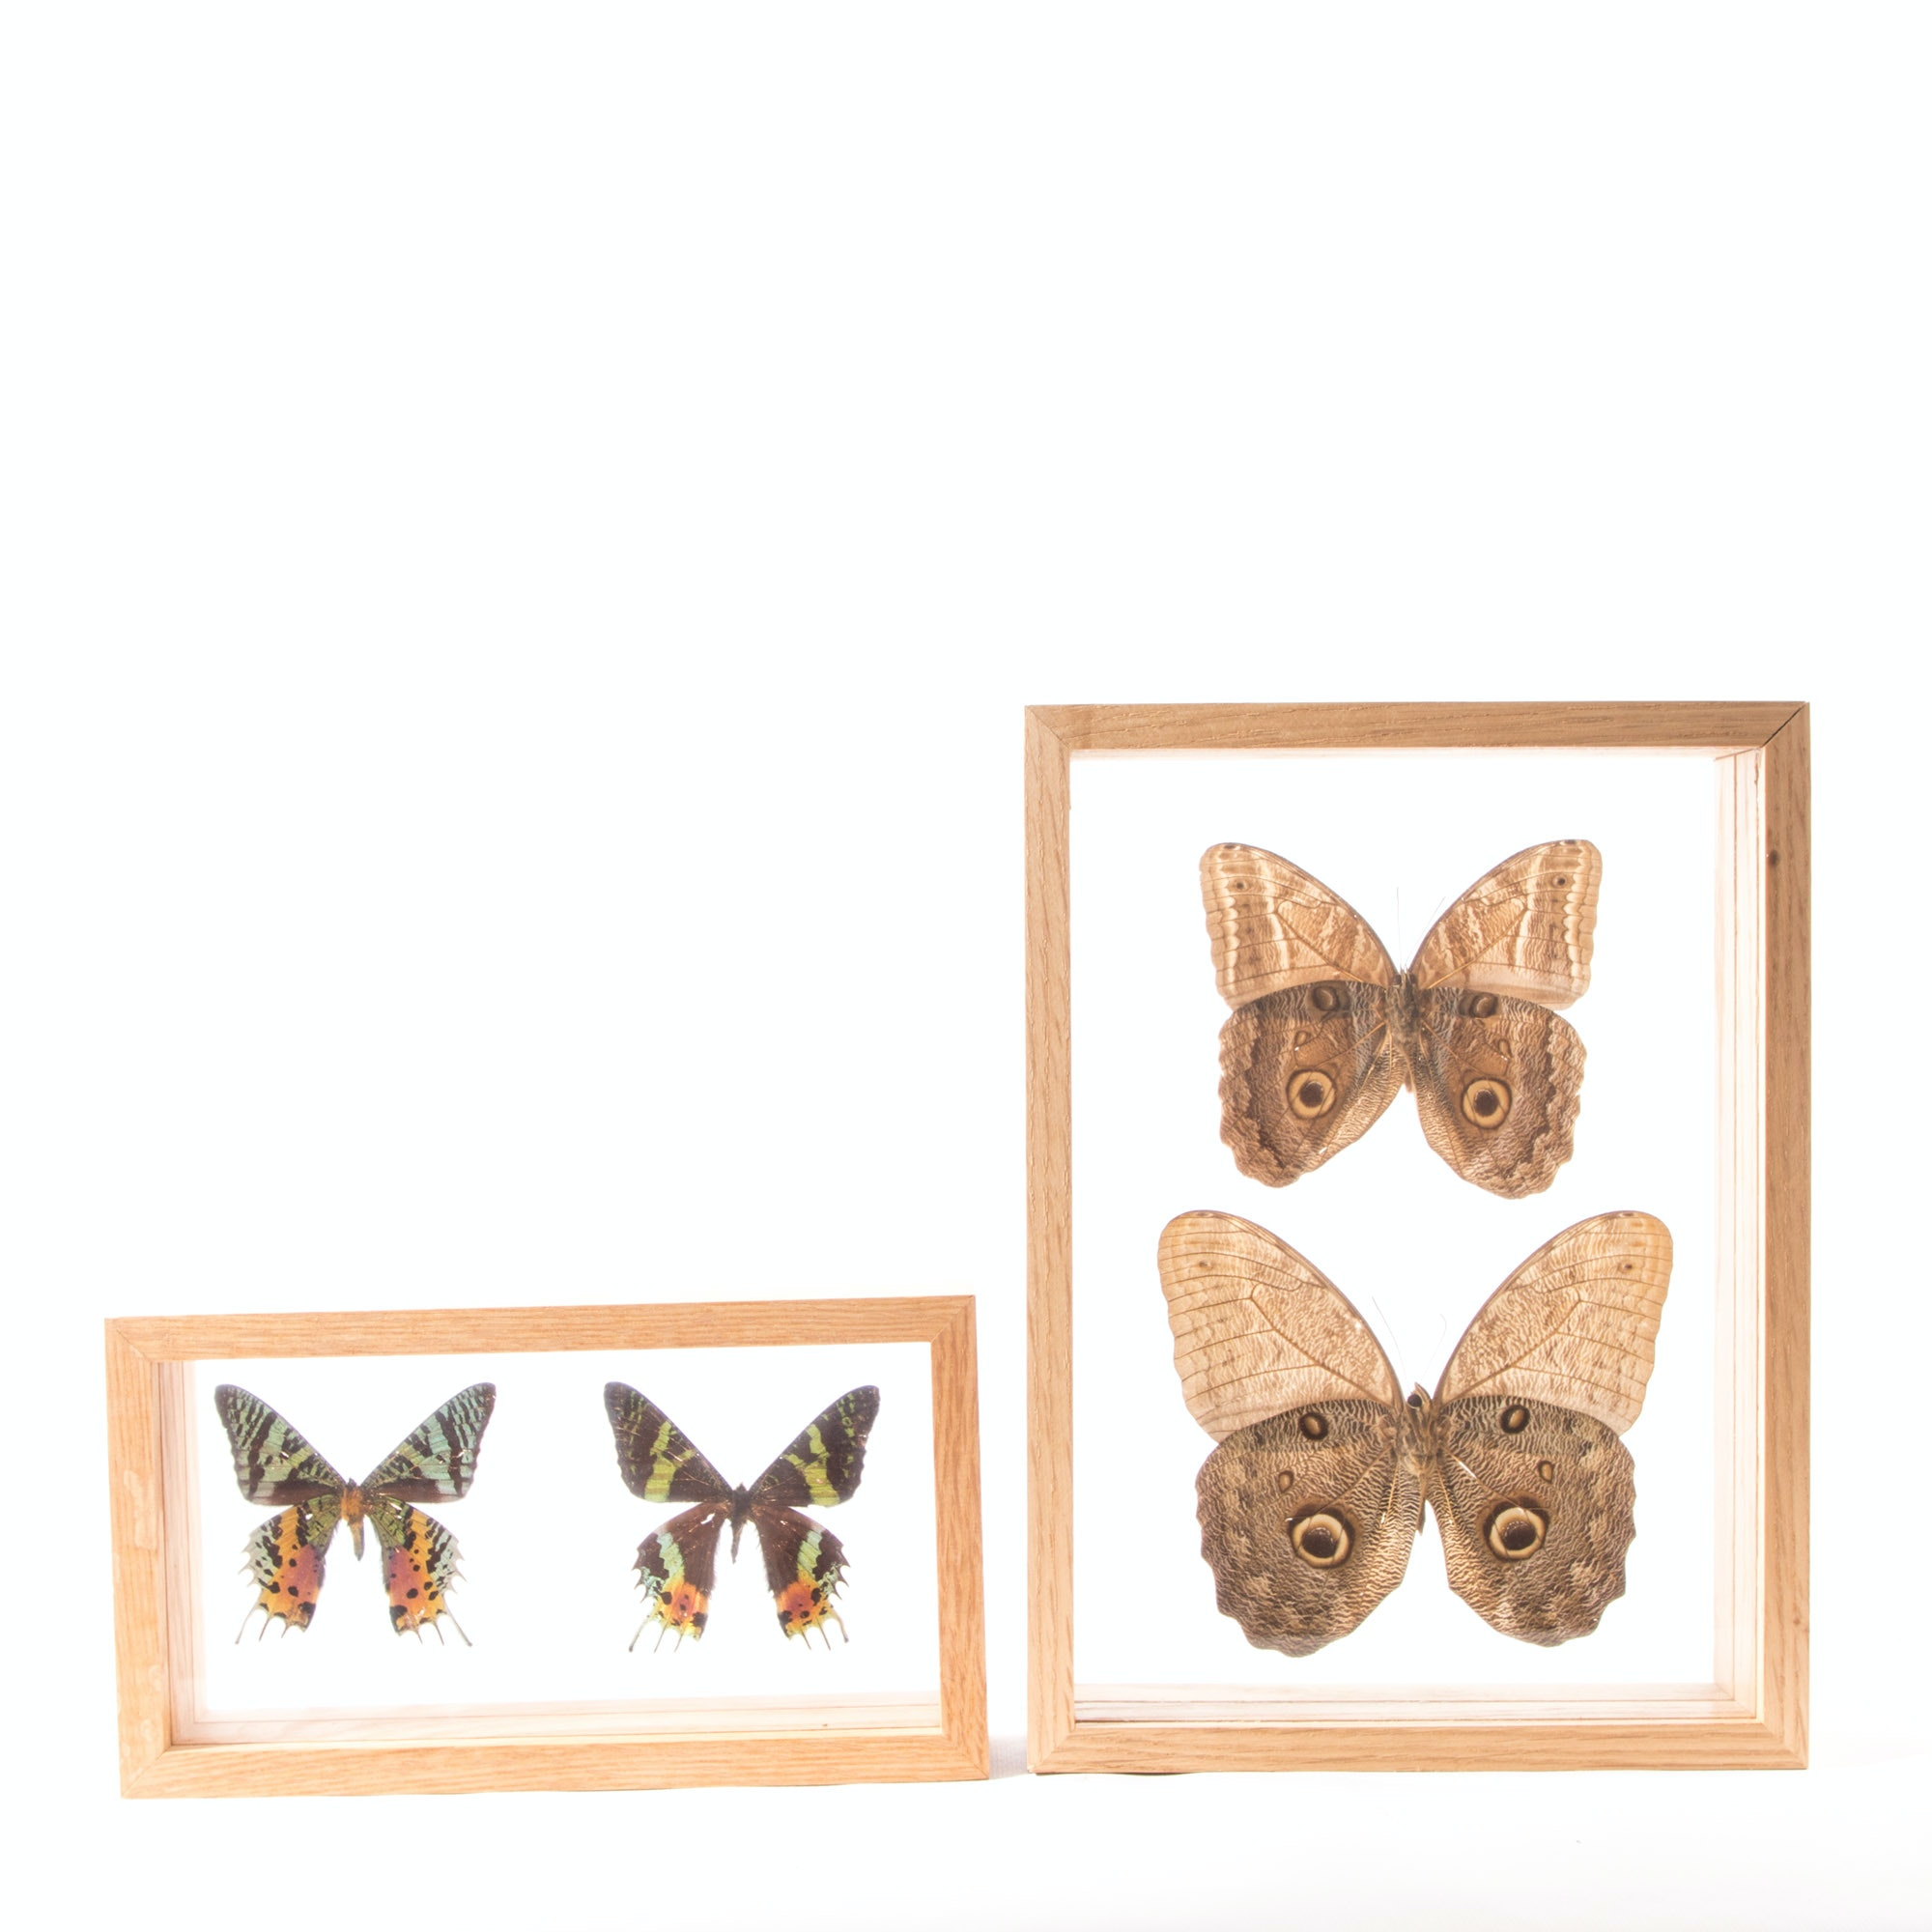 Butterfly and Moth Specimens